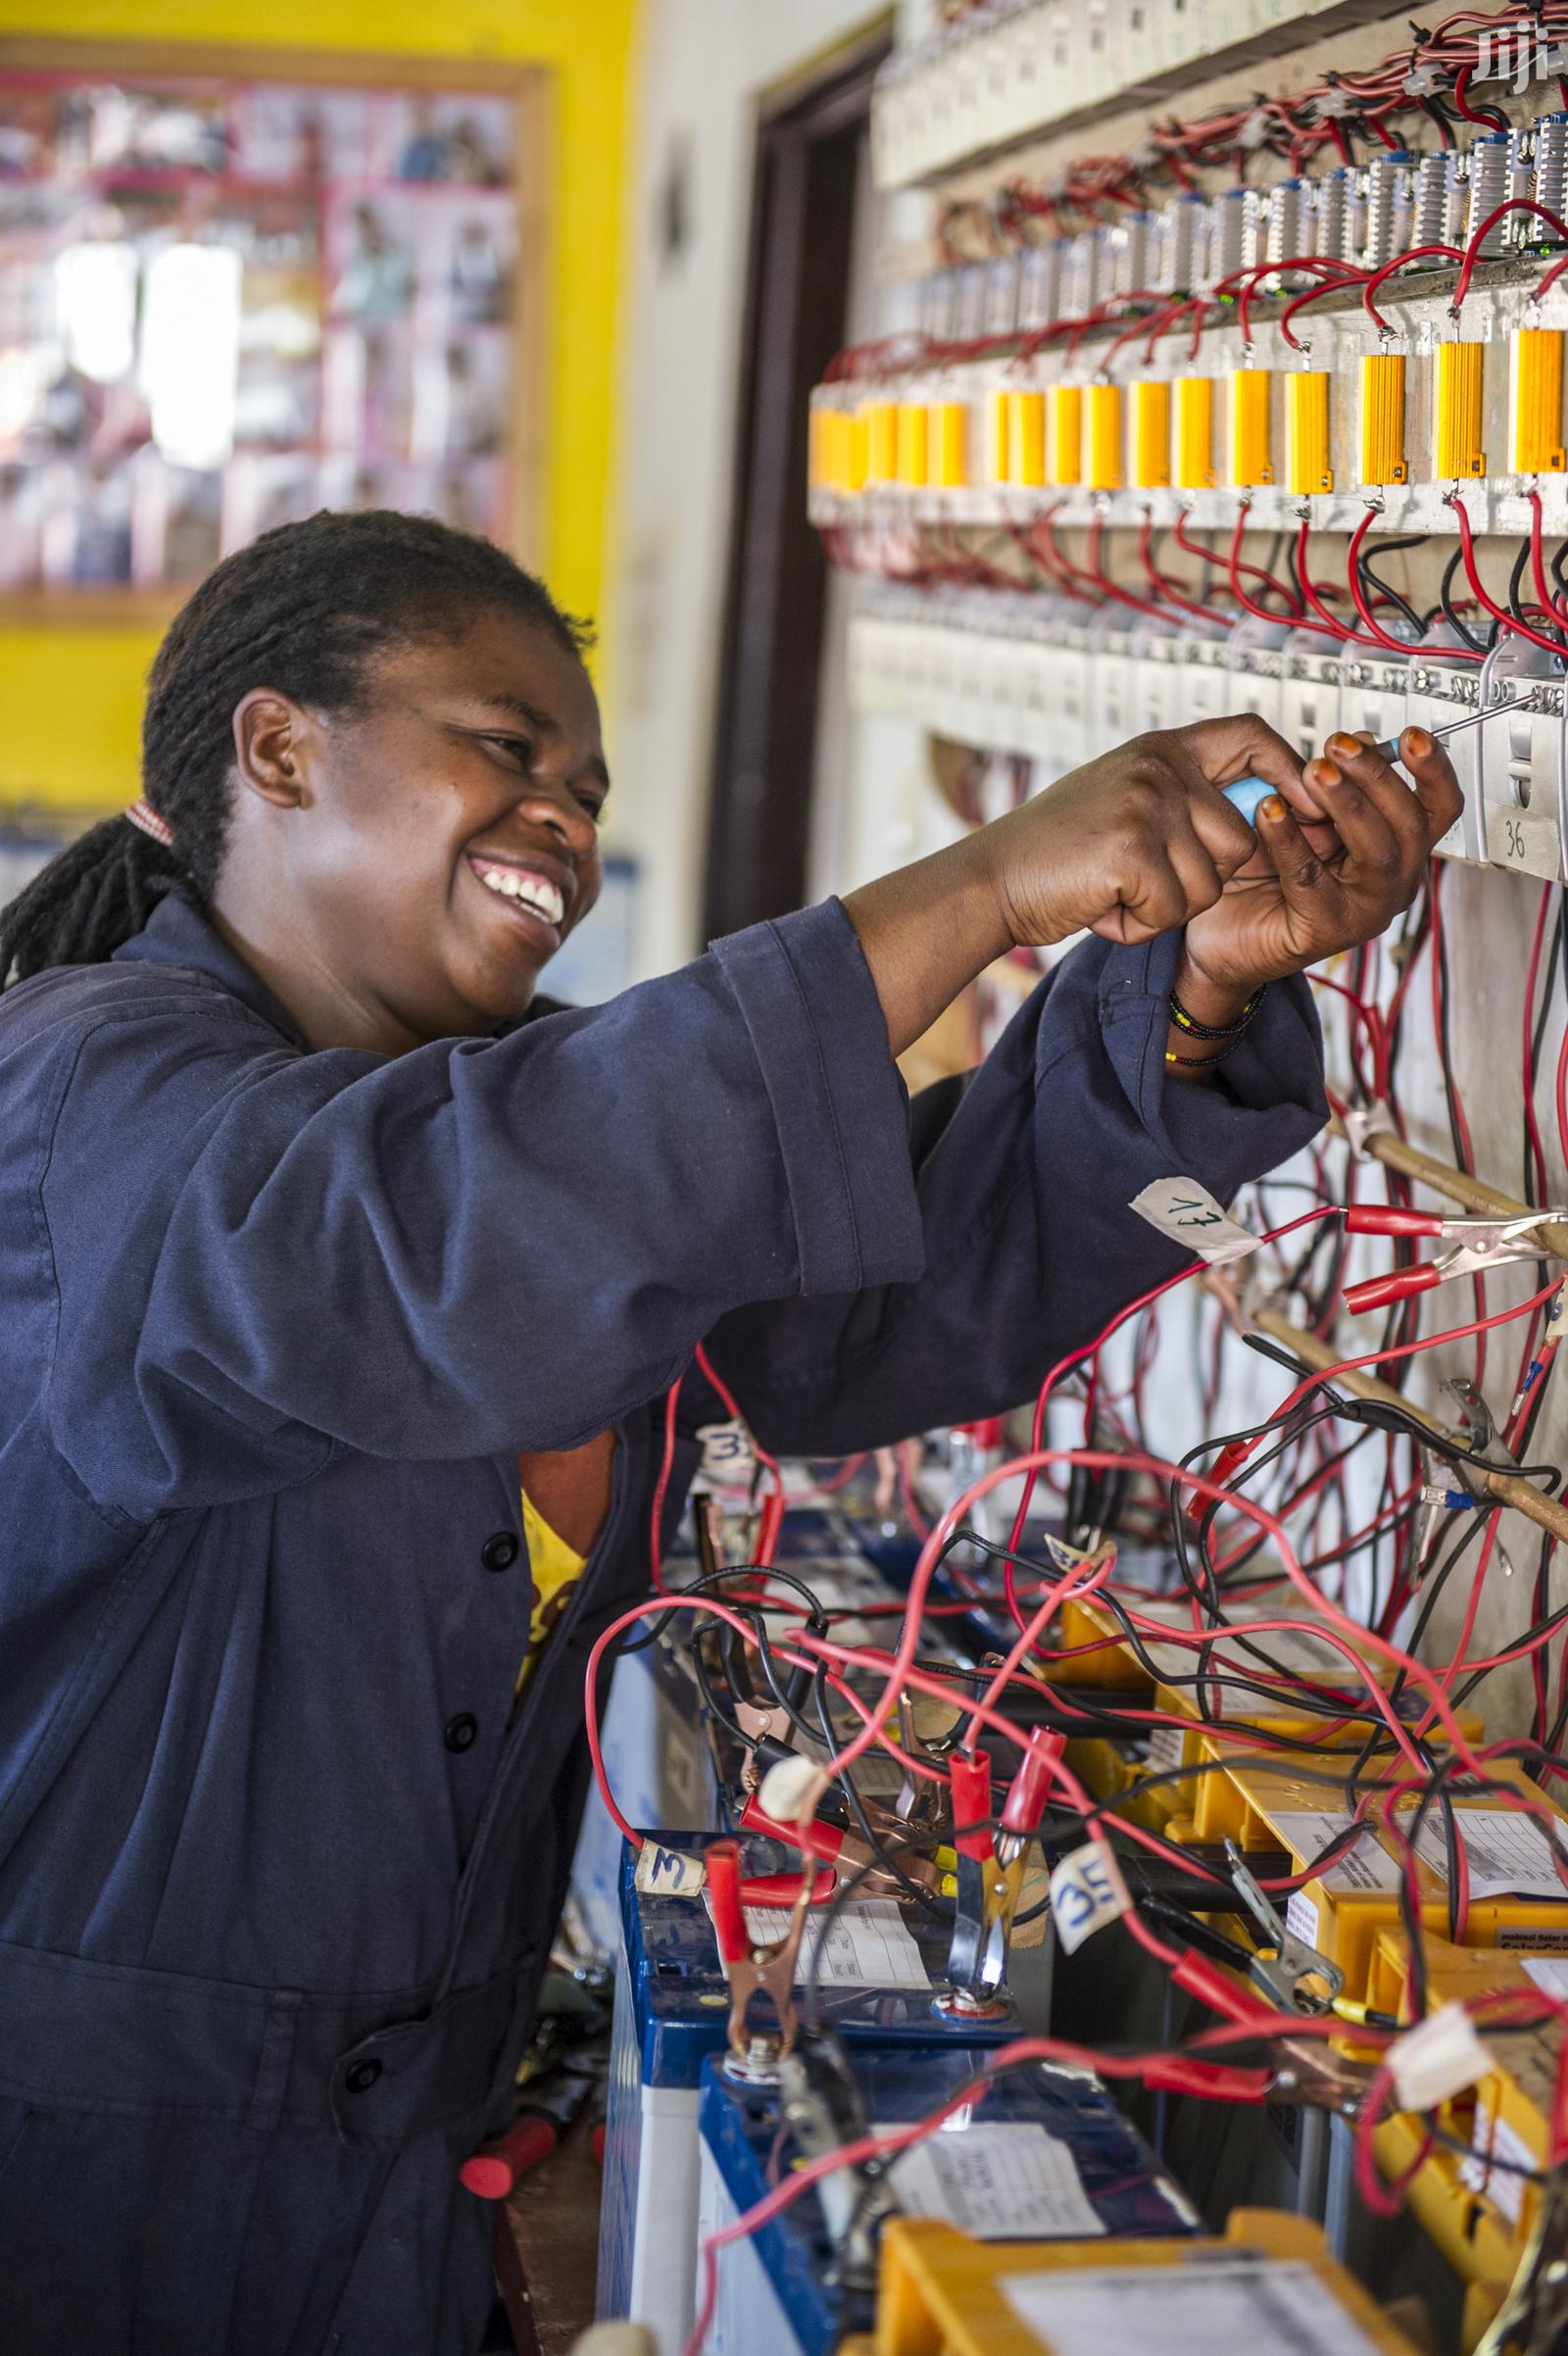 Hire An Electrician For Any Electrical Job In Nairobi Today. | Repair Services for sale in South C, Nairobi, Kenya